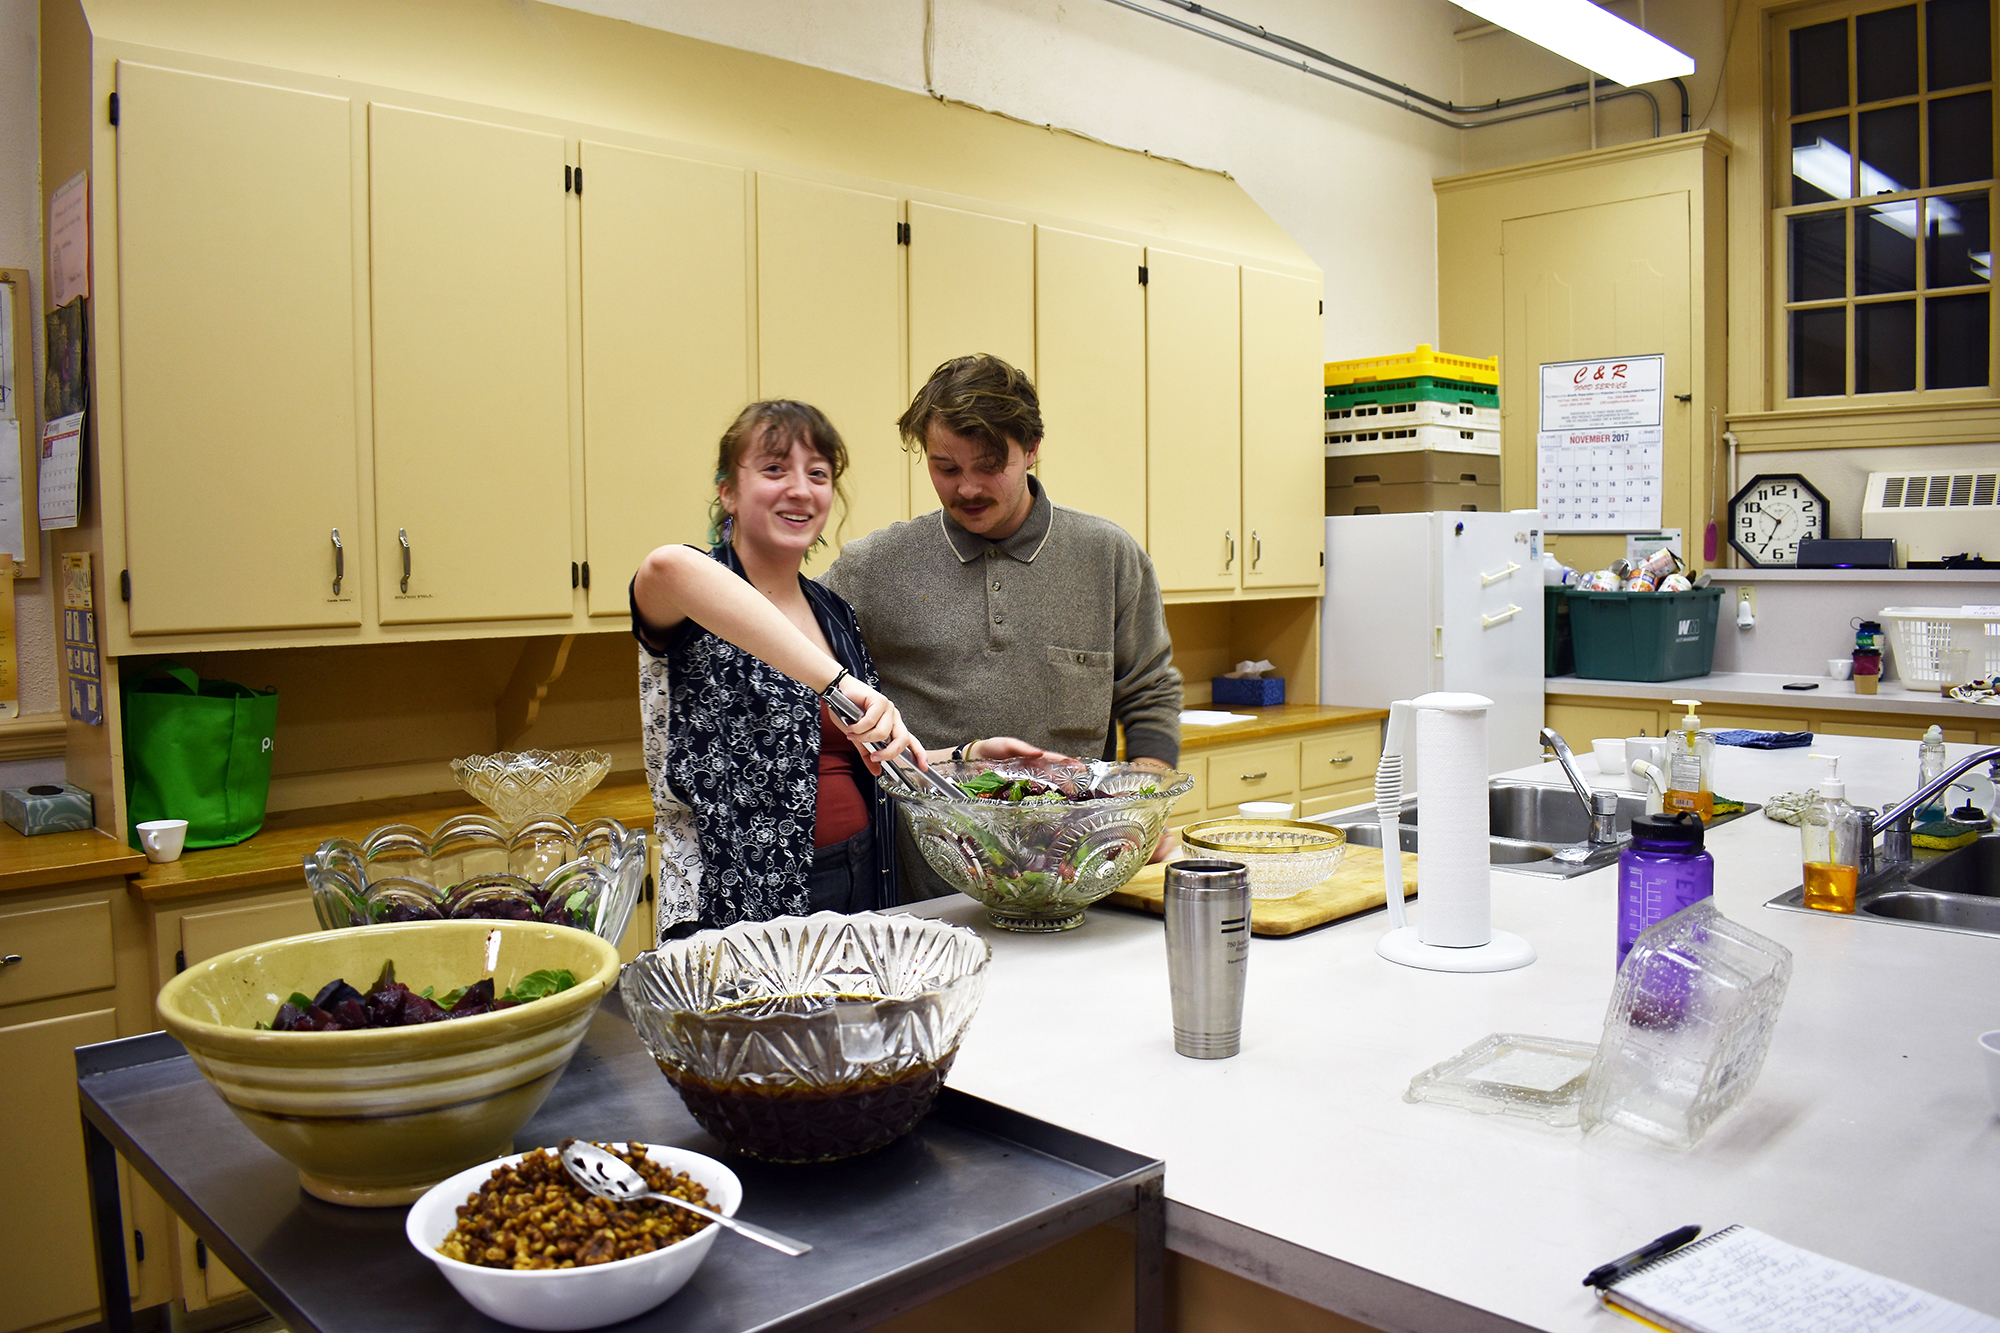 Theater major junior Lila Klatz (pictured left) and English major senior Nolan Parker (pictured right) preparing for the fall community dinner in the Central Presbyterian Church kitchen on Saturday Nov. 4. The dinner also featured a coat drive for migrant workers. (Izzy Graziano/Knights' Life Editor)